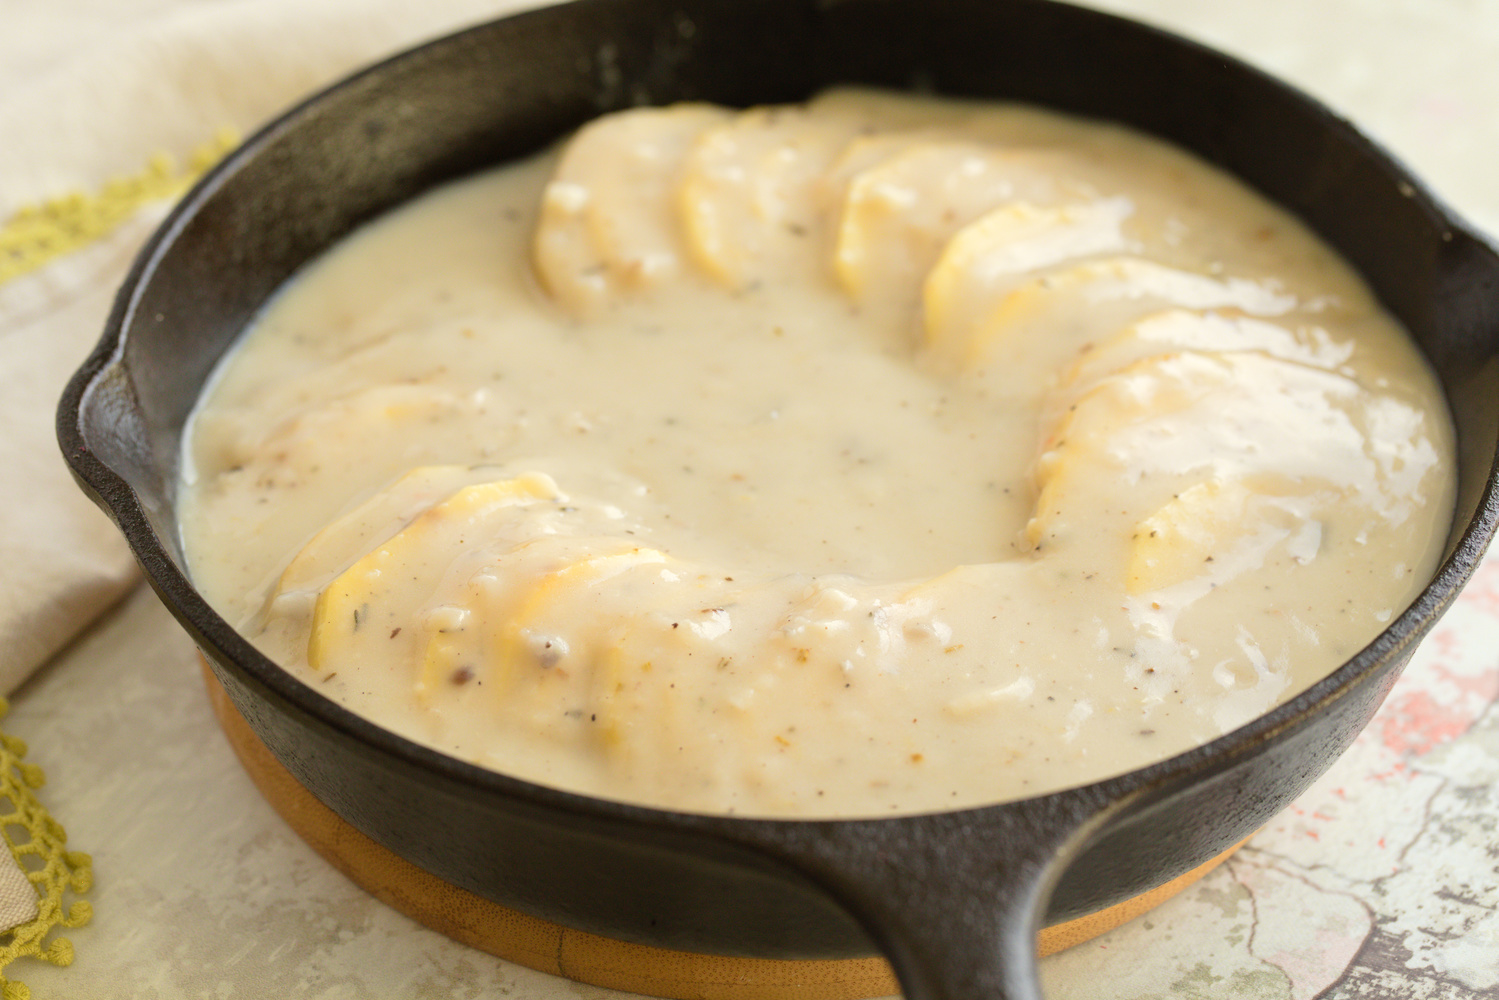 sliced potatoes drizzled with creamy cheesy sauce in a cast iron skillet